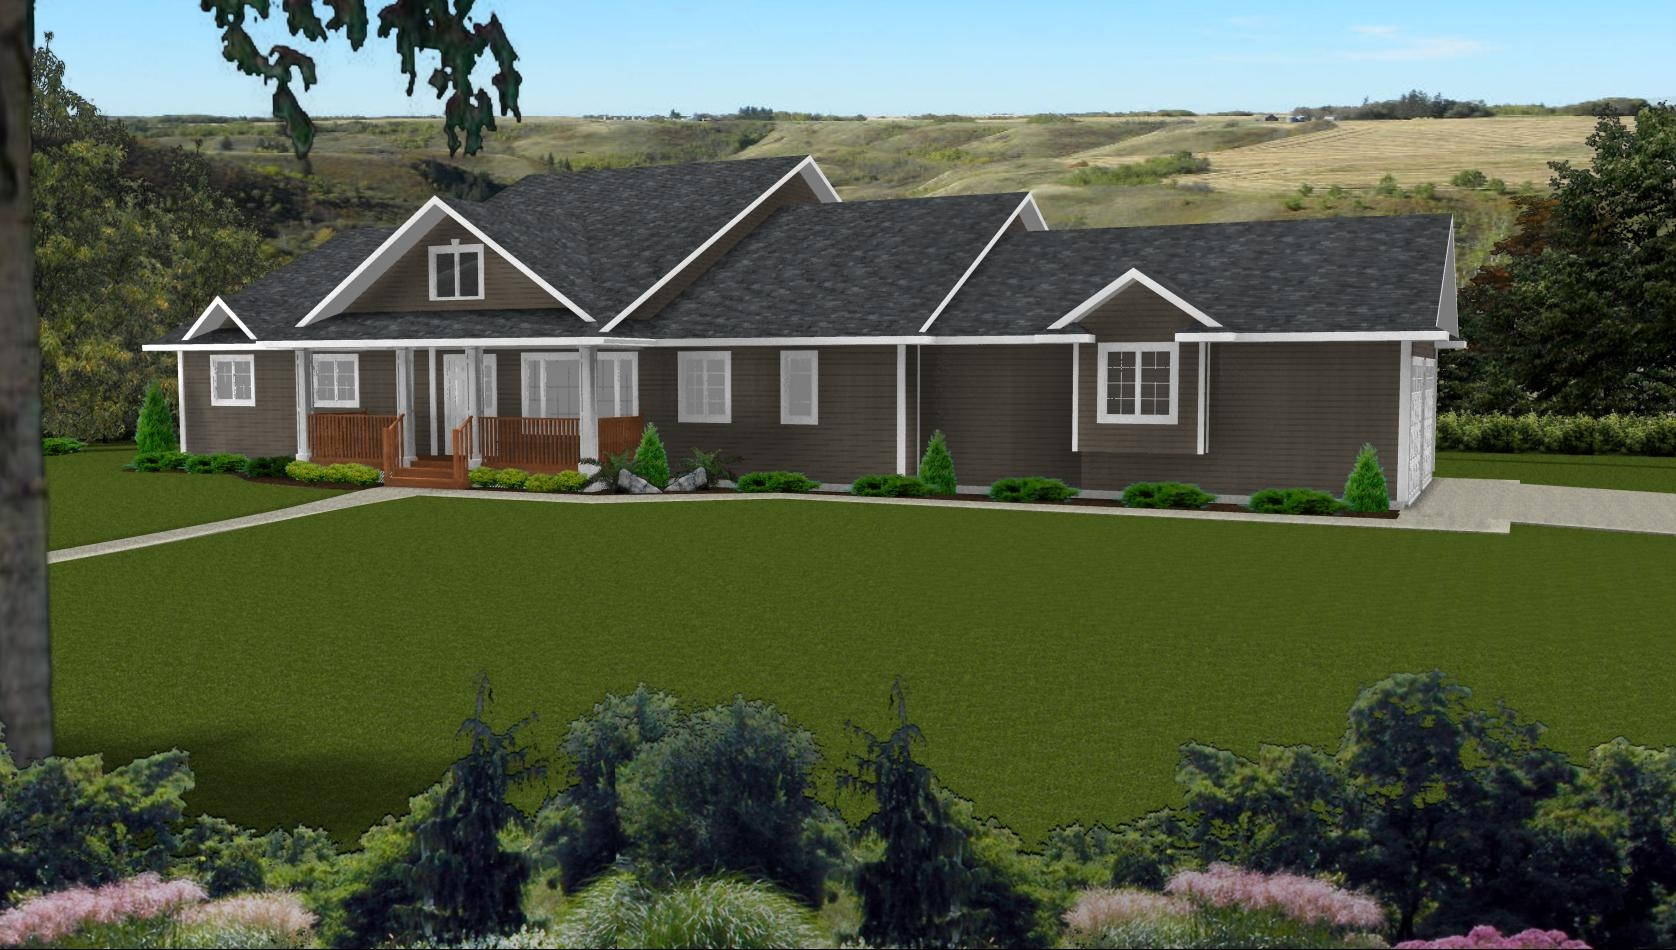 Simple Ranch Style House Plans With Walkout Basement Basement